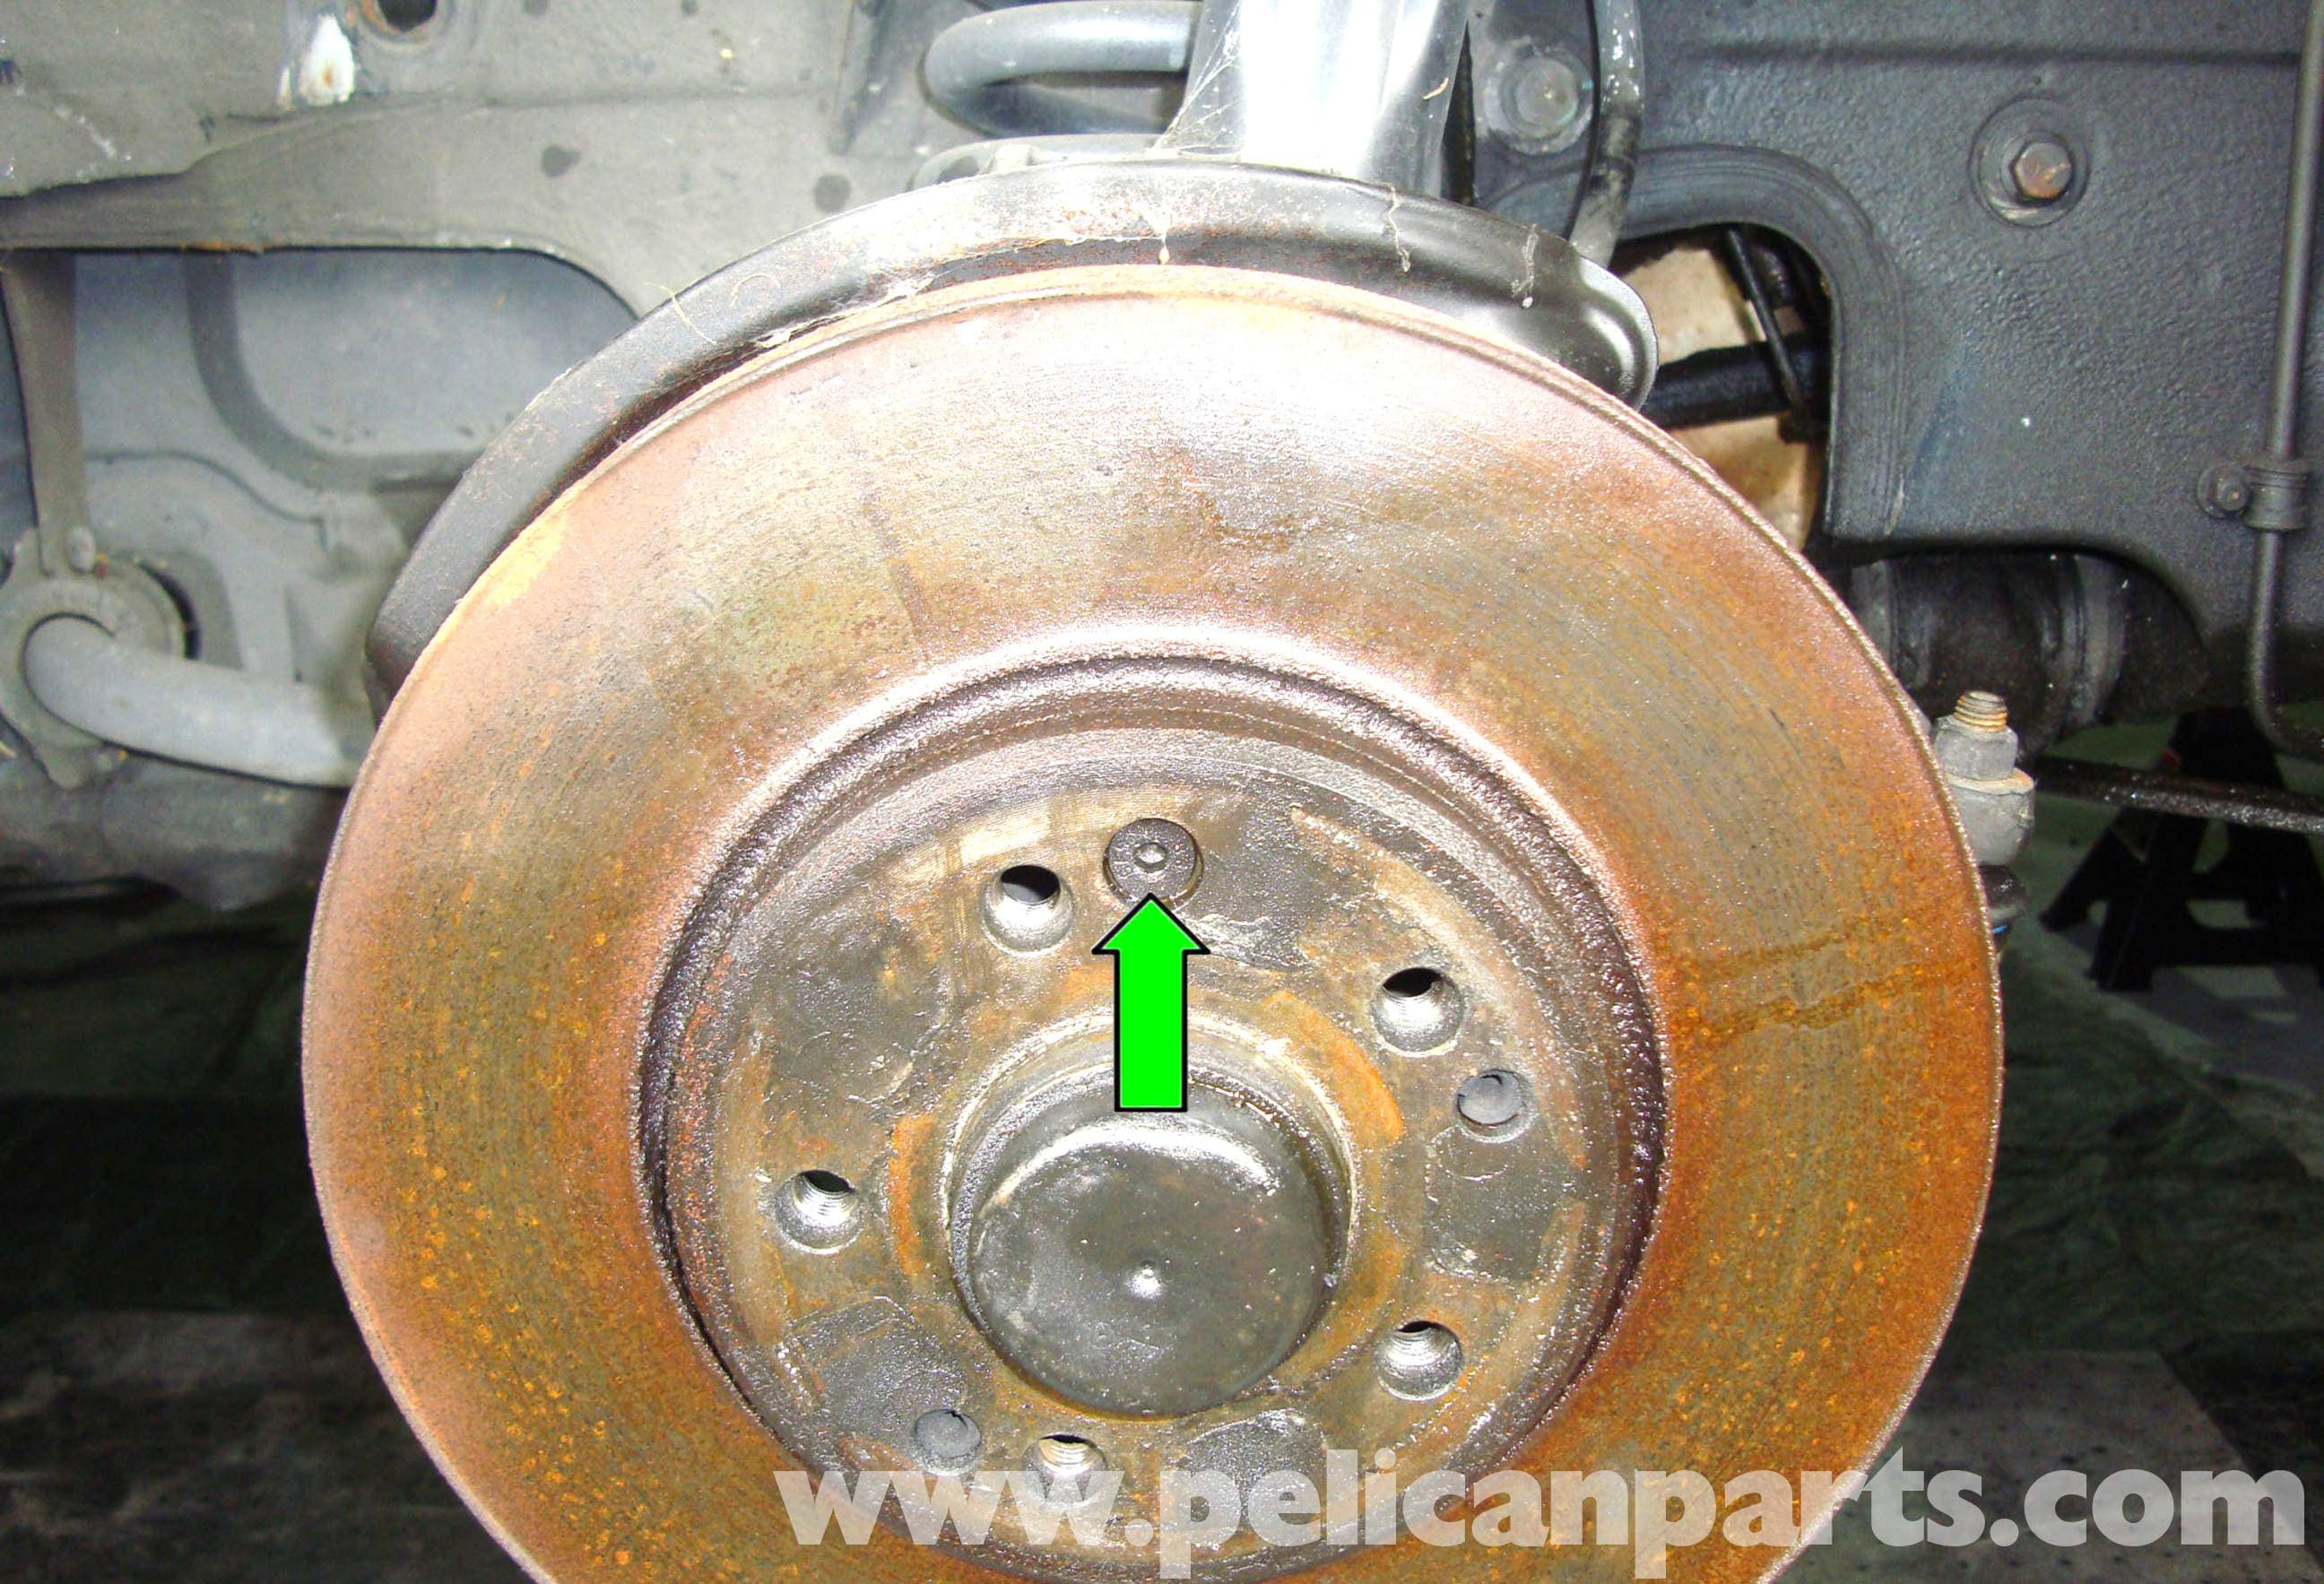 Mercedes benz r129 brake rotor replacement sl class r129 for Mercedes benz rotors replacement